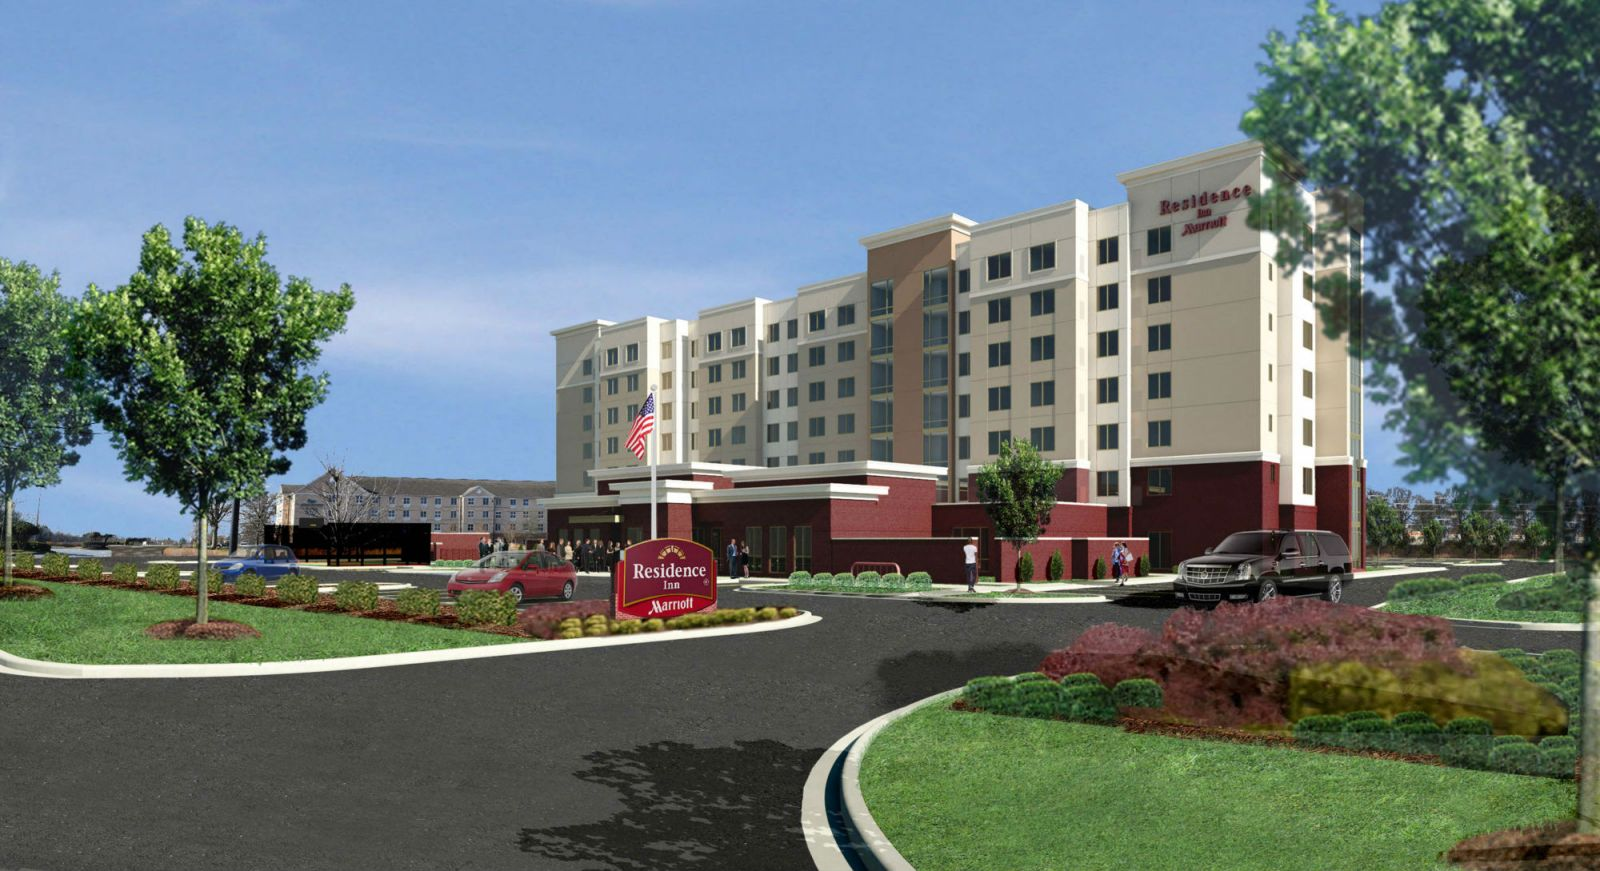 This is a rendering of the new Residence Inn by Marriott which will be located on Carolina Point Parkway in Greenville. Windsor Aughtry Hotel Group in Greenville said it has already started construction on the 138-room facility. (Rendering/Provided)